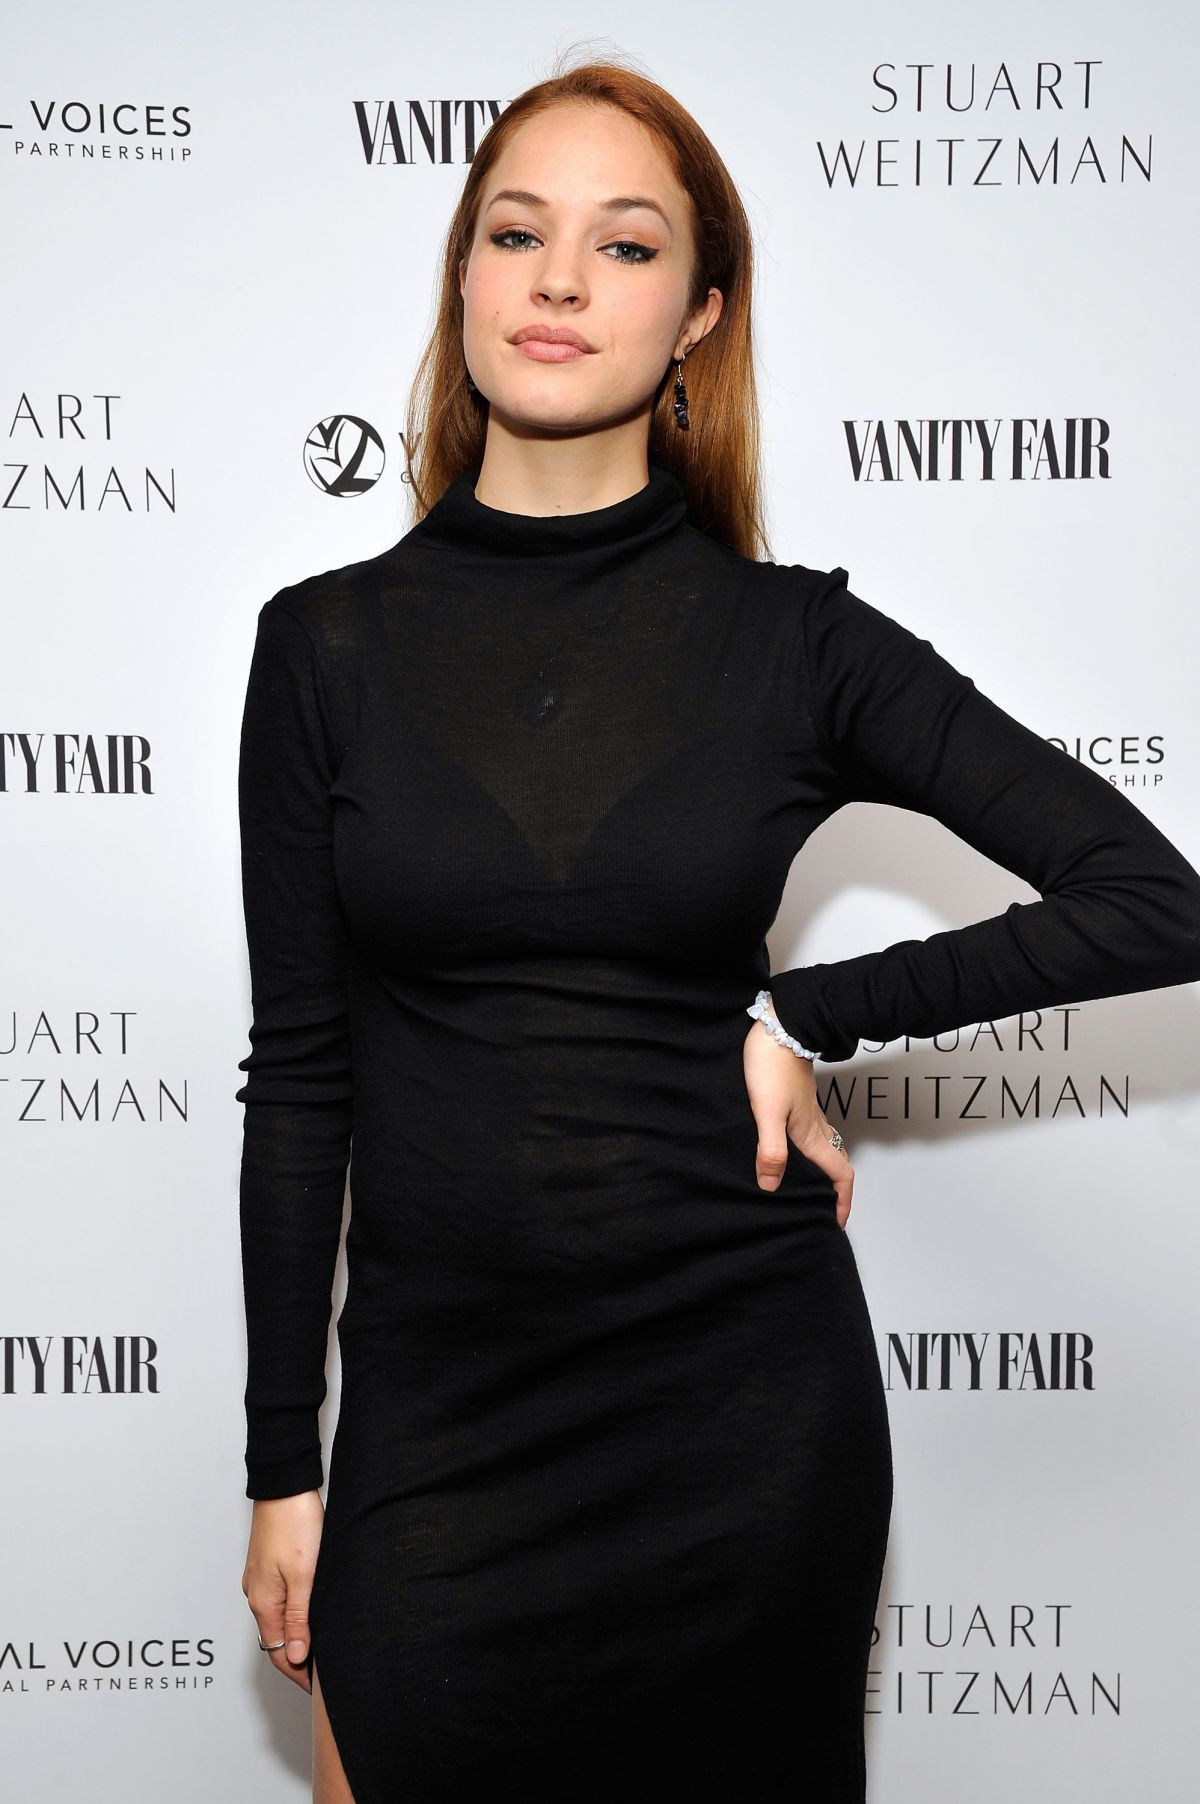 ALEXIS KNAPP at Vanity Fair and Stuart Weitzman Luncheon in West Hollywood 02/26/2016